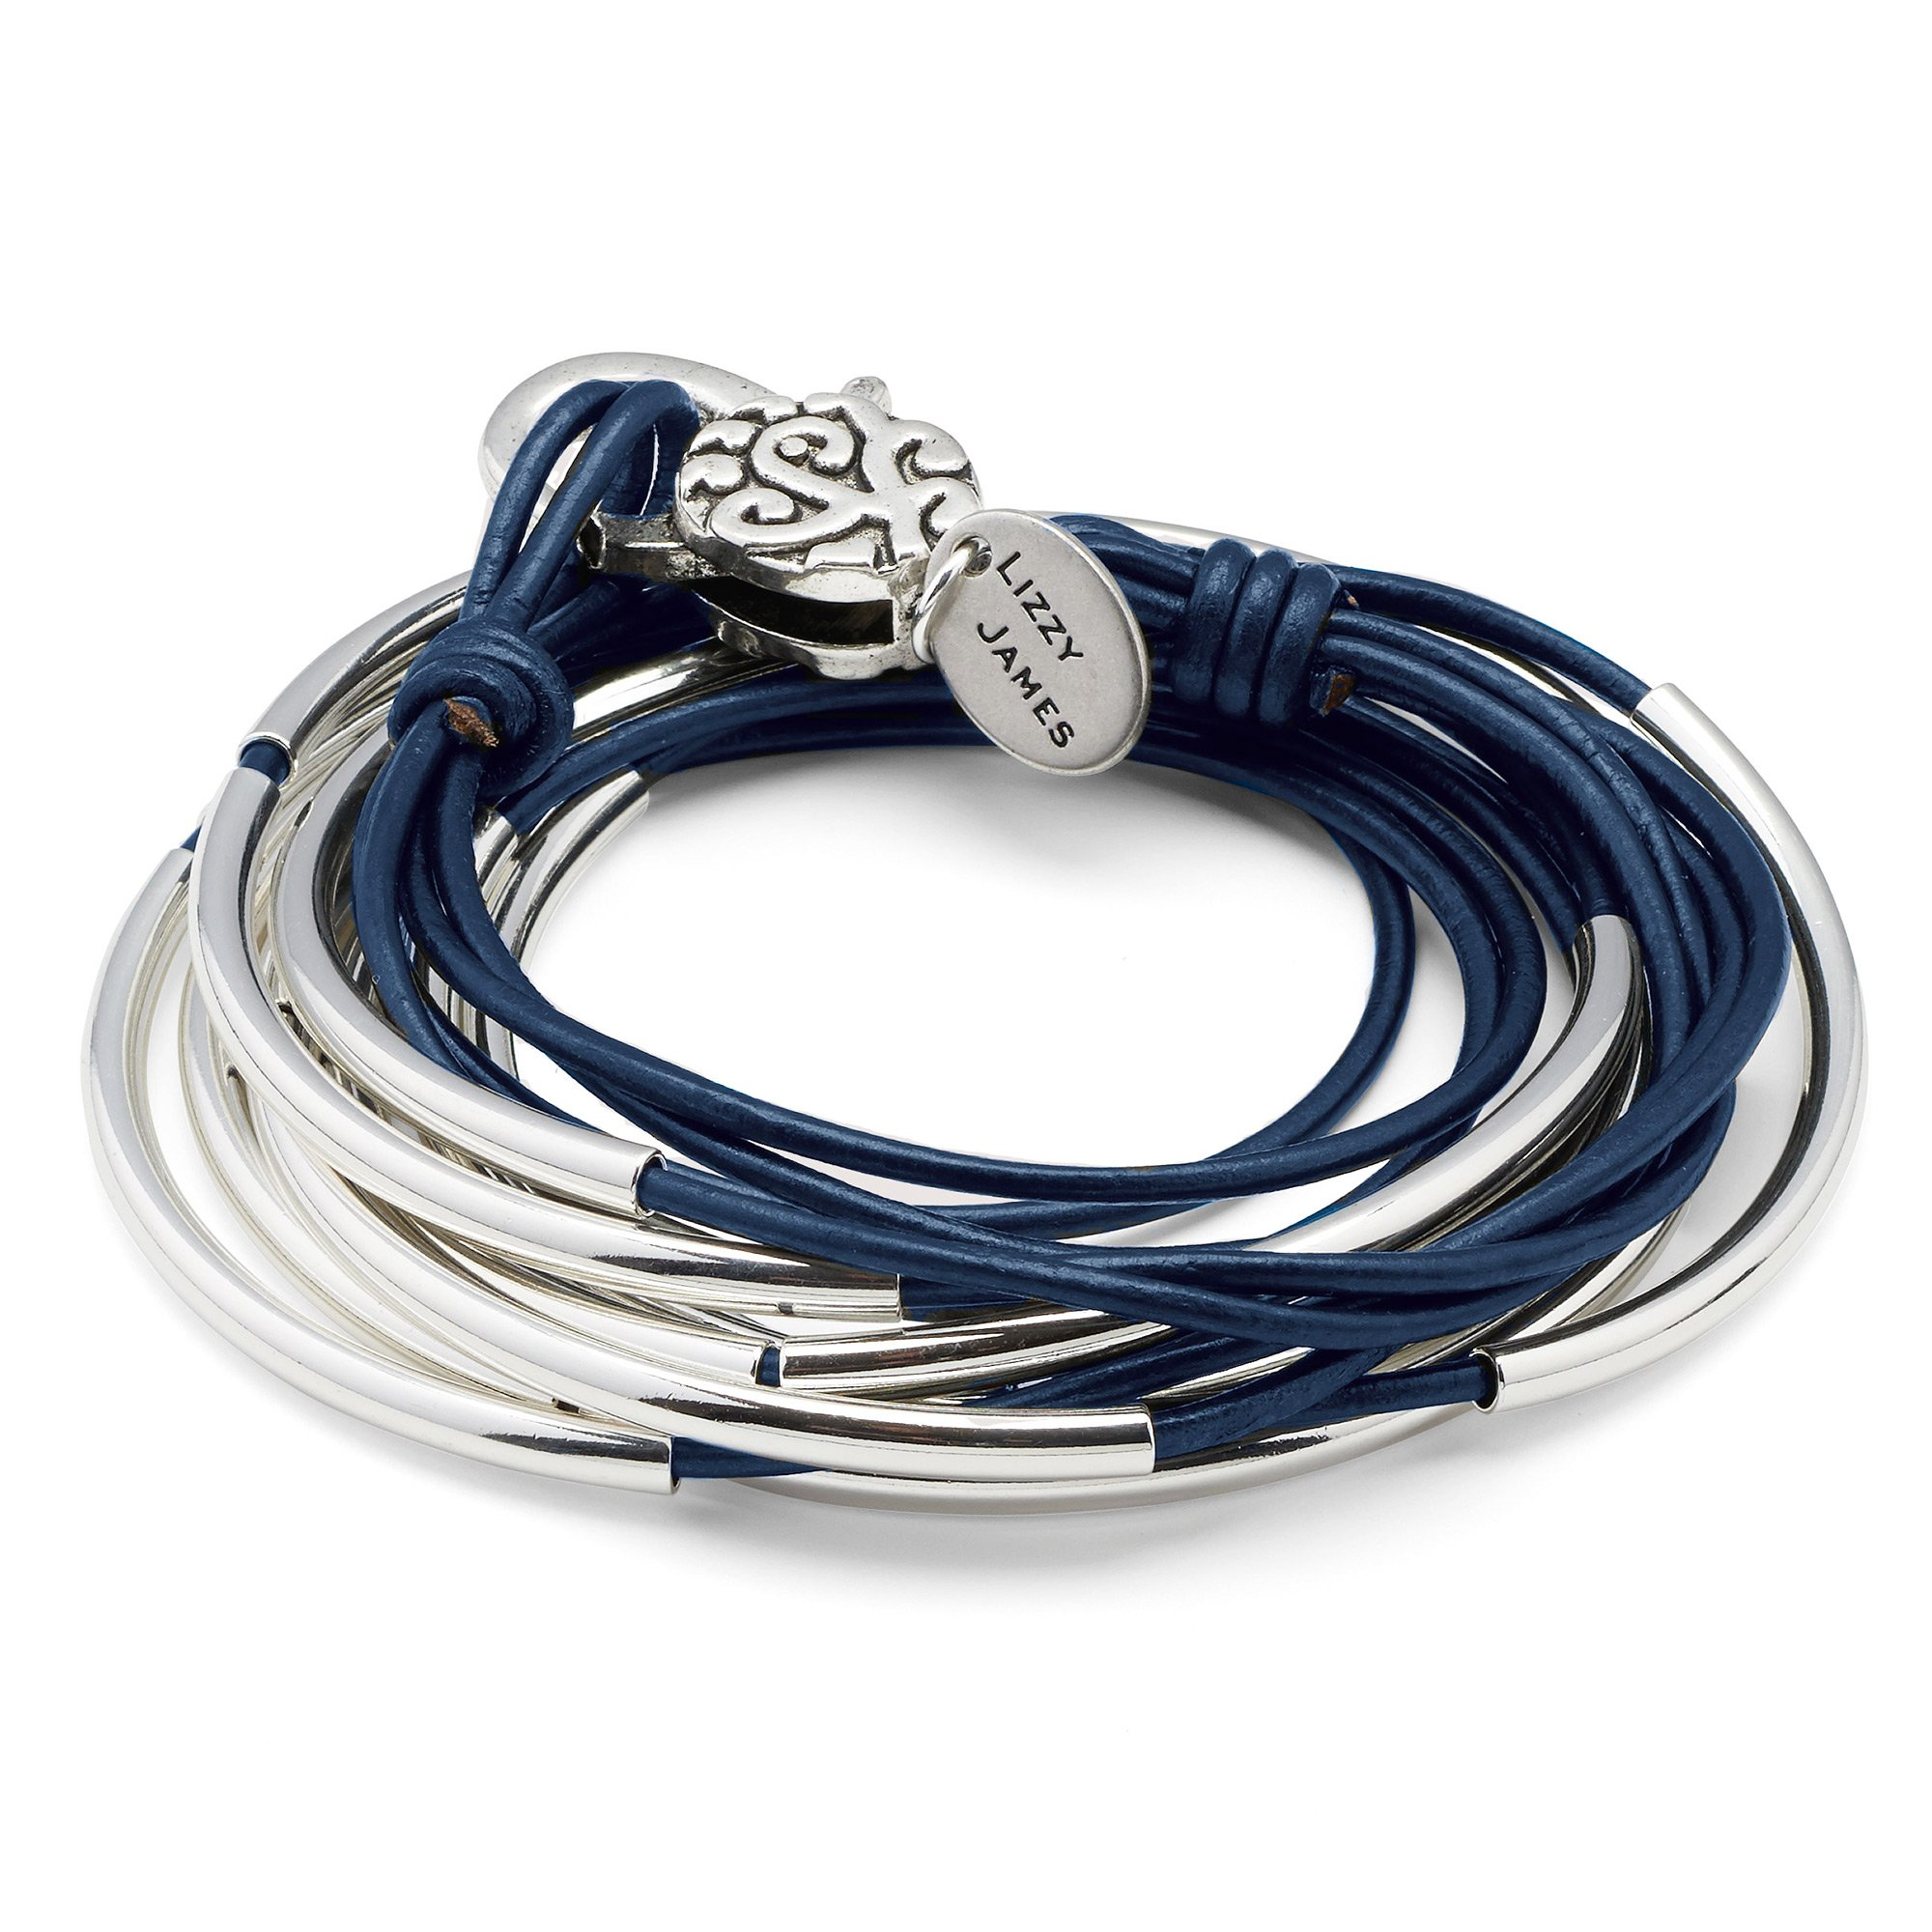 Lizzy Classic Gloss Navy Leather and Silver Wrap Bracelet Necklace (MEDIUM) by Lizzy James